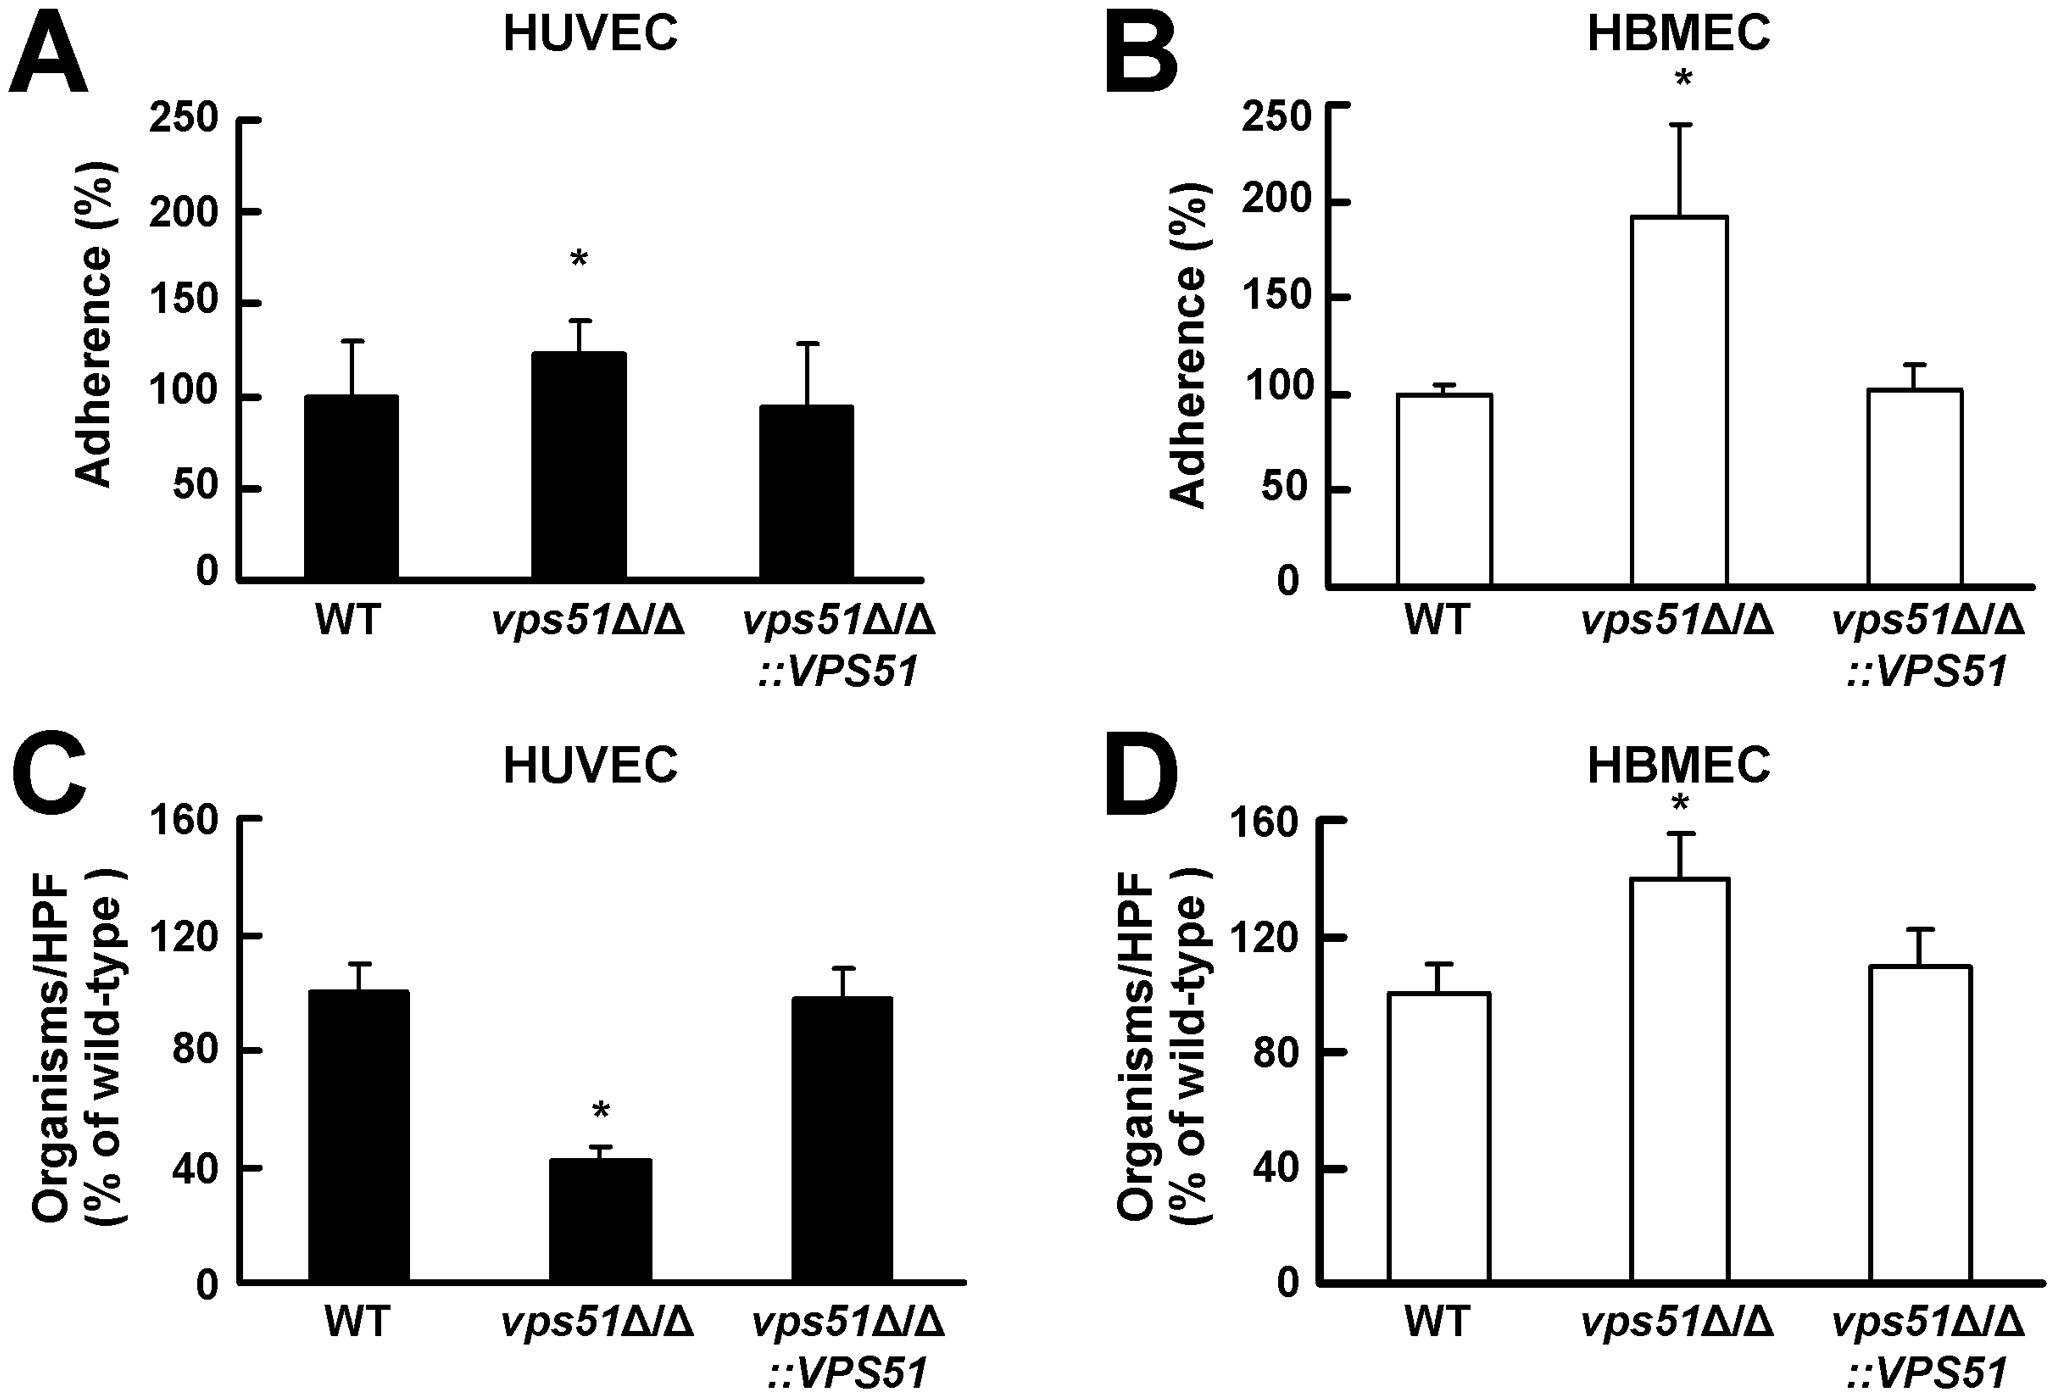 The <i>vps51</i>Δ/Δ mutant interacts differently with human umbilical vein endothelial cells (HUVECs) versus human brain microvascular endothelial cells (HBMECs).